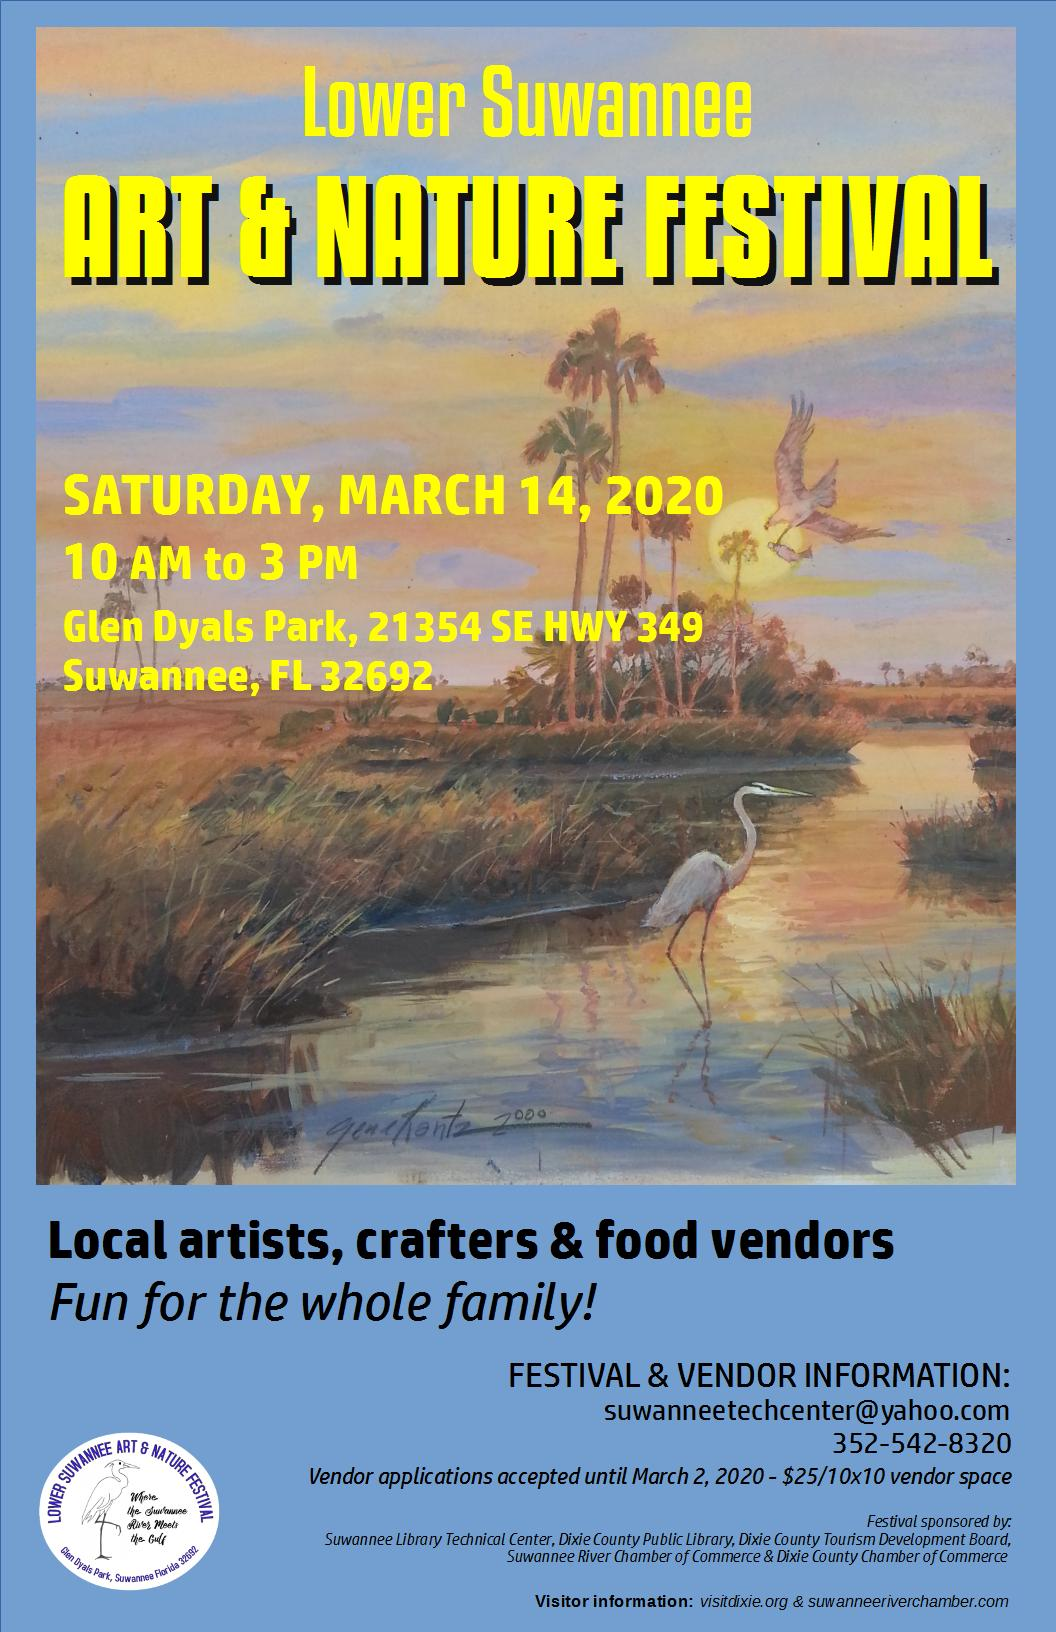 Lower Suwannee Art & Nature Festival